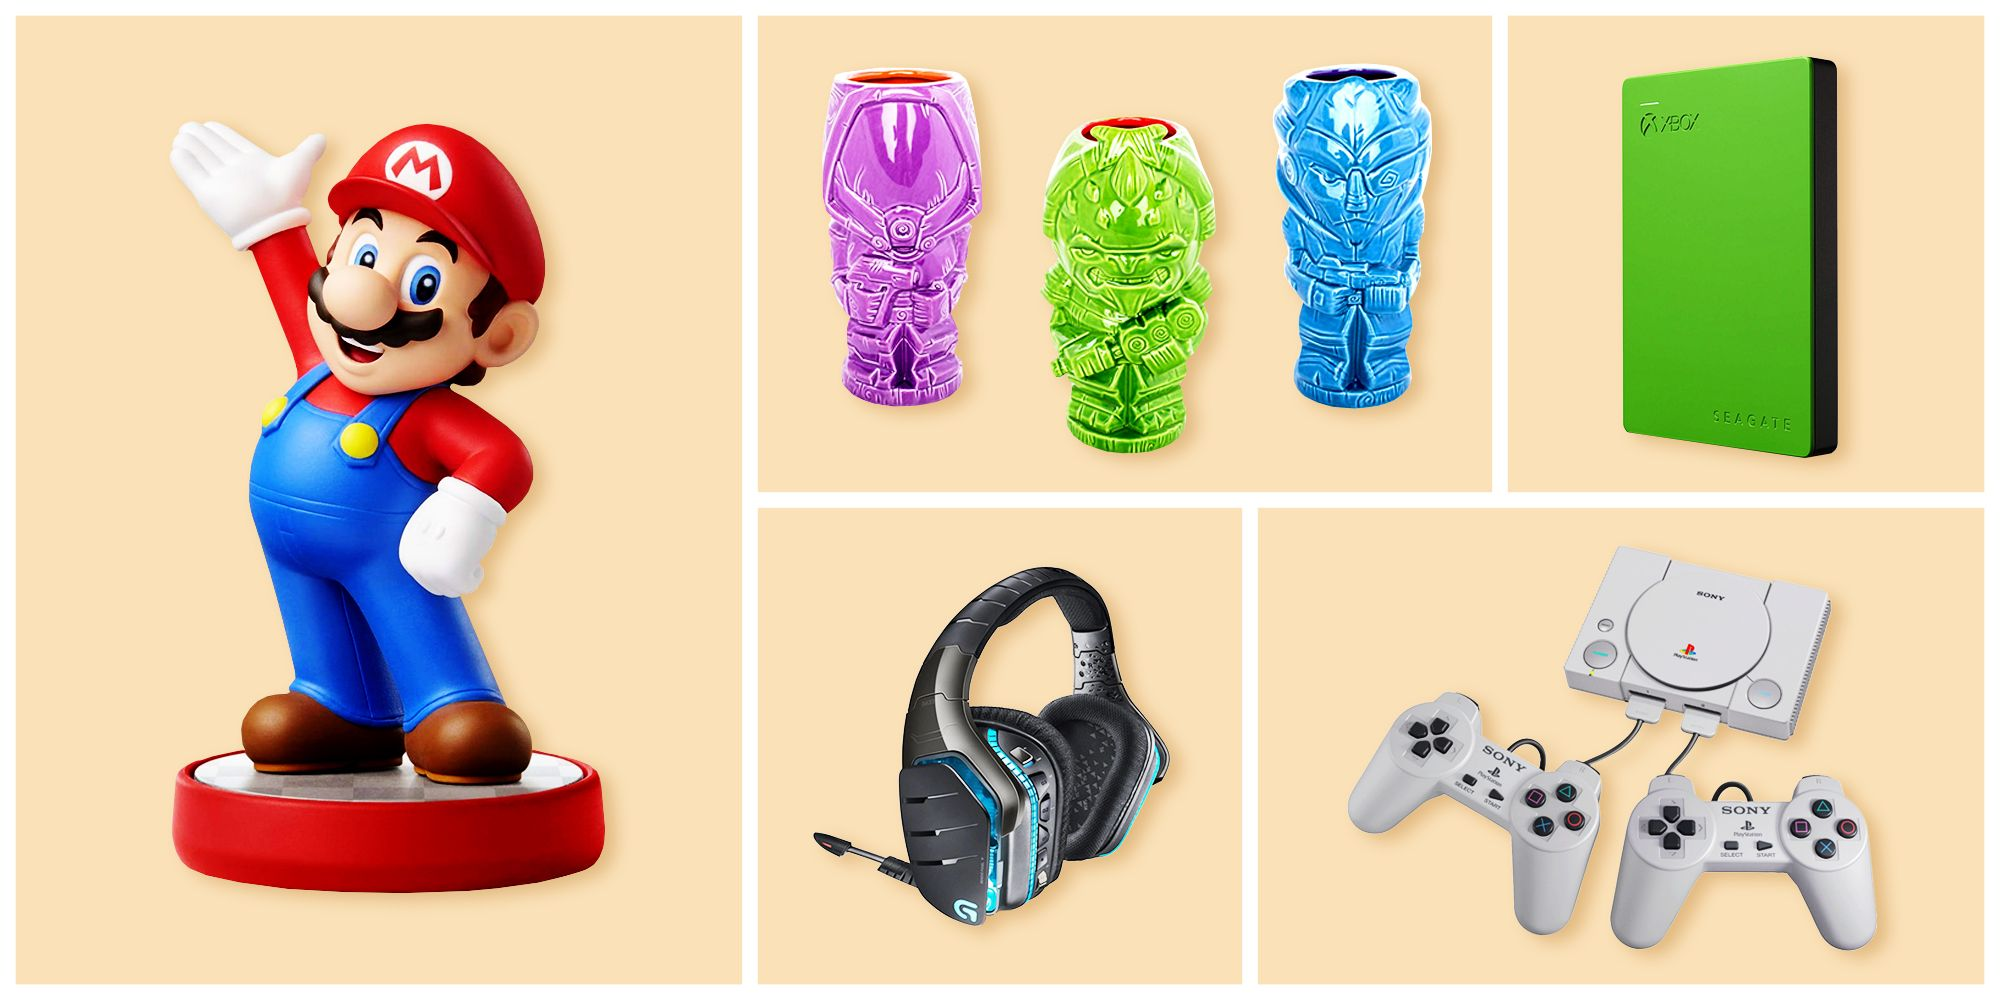 55 Best Gifts for Gamers 2018 - Christmas Gift Ideas for Video Game ...